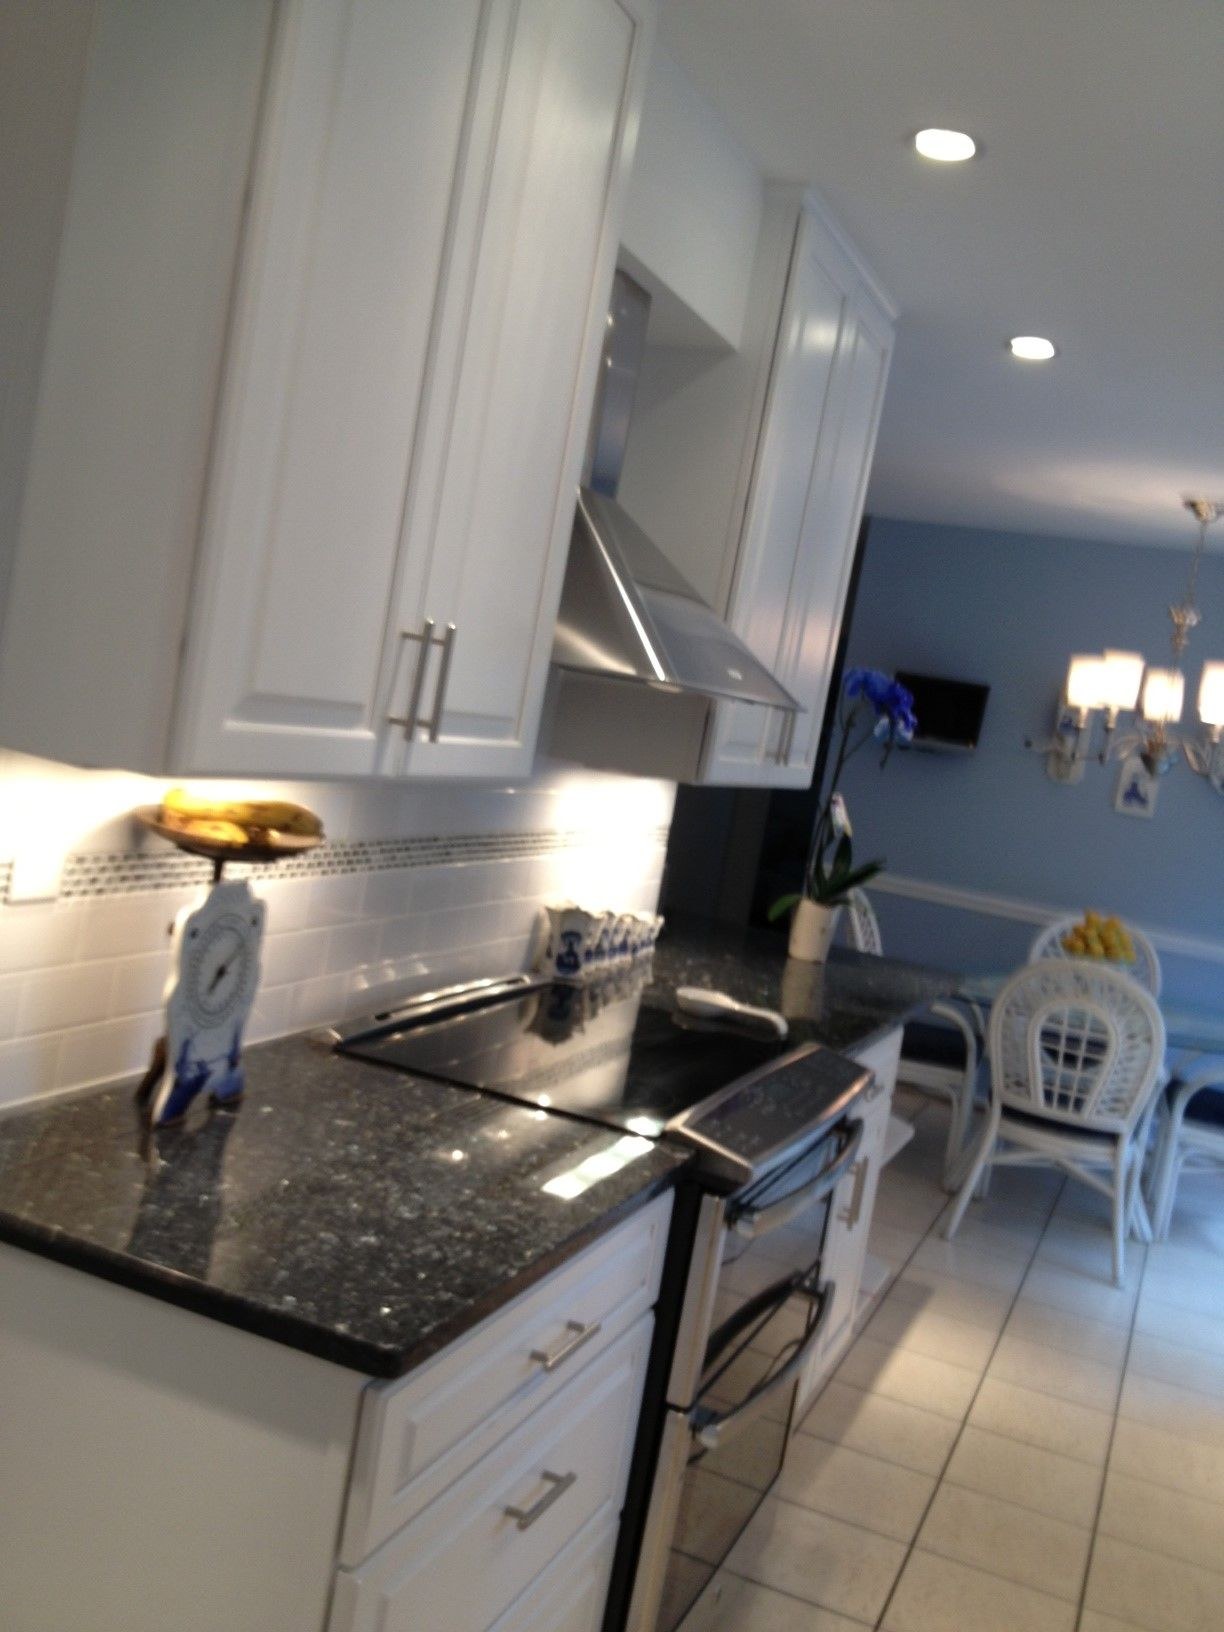 Blue Pearl Granite Backsplash Ideas Part - 37: The Counter Top We Chose Is Blue Pearl Granite With A White Back Splash  That Has. Blue Pearl GraniteBacksplash IdeasKitchen ...